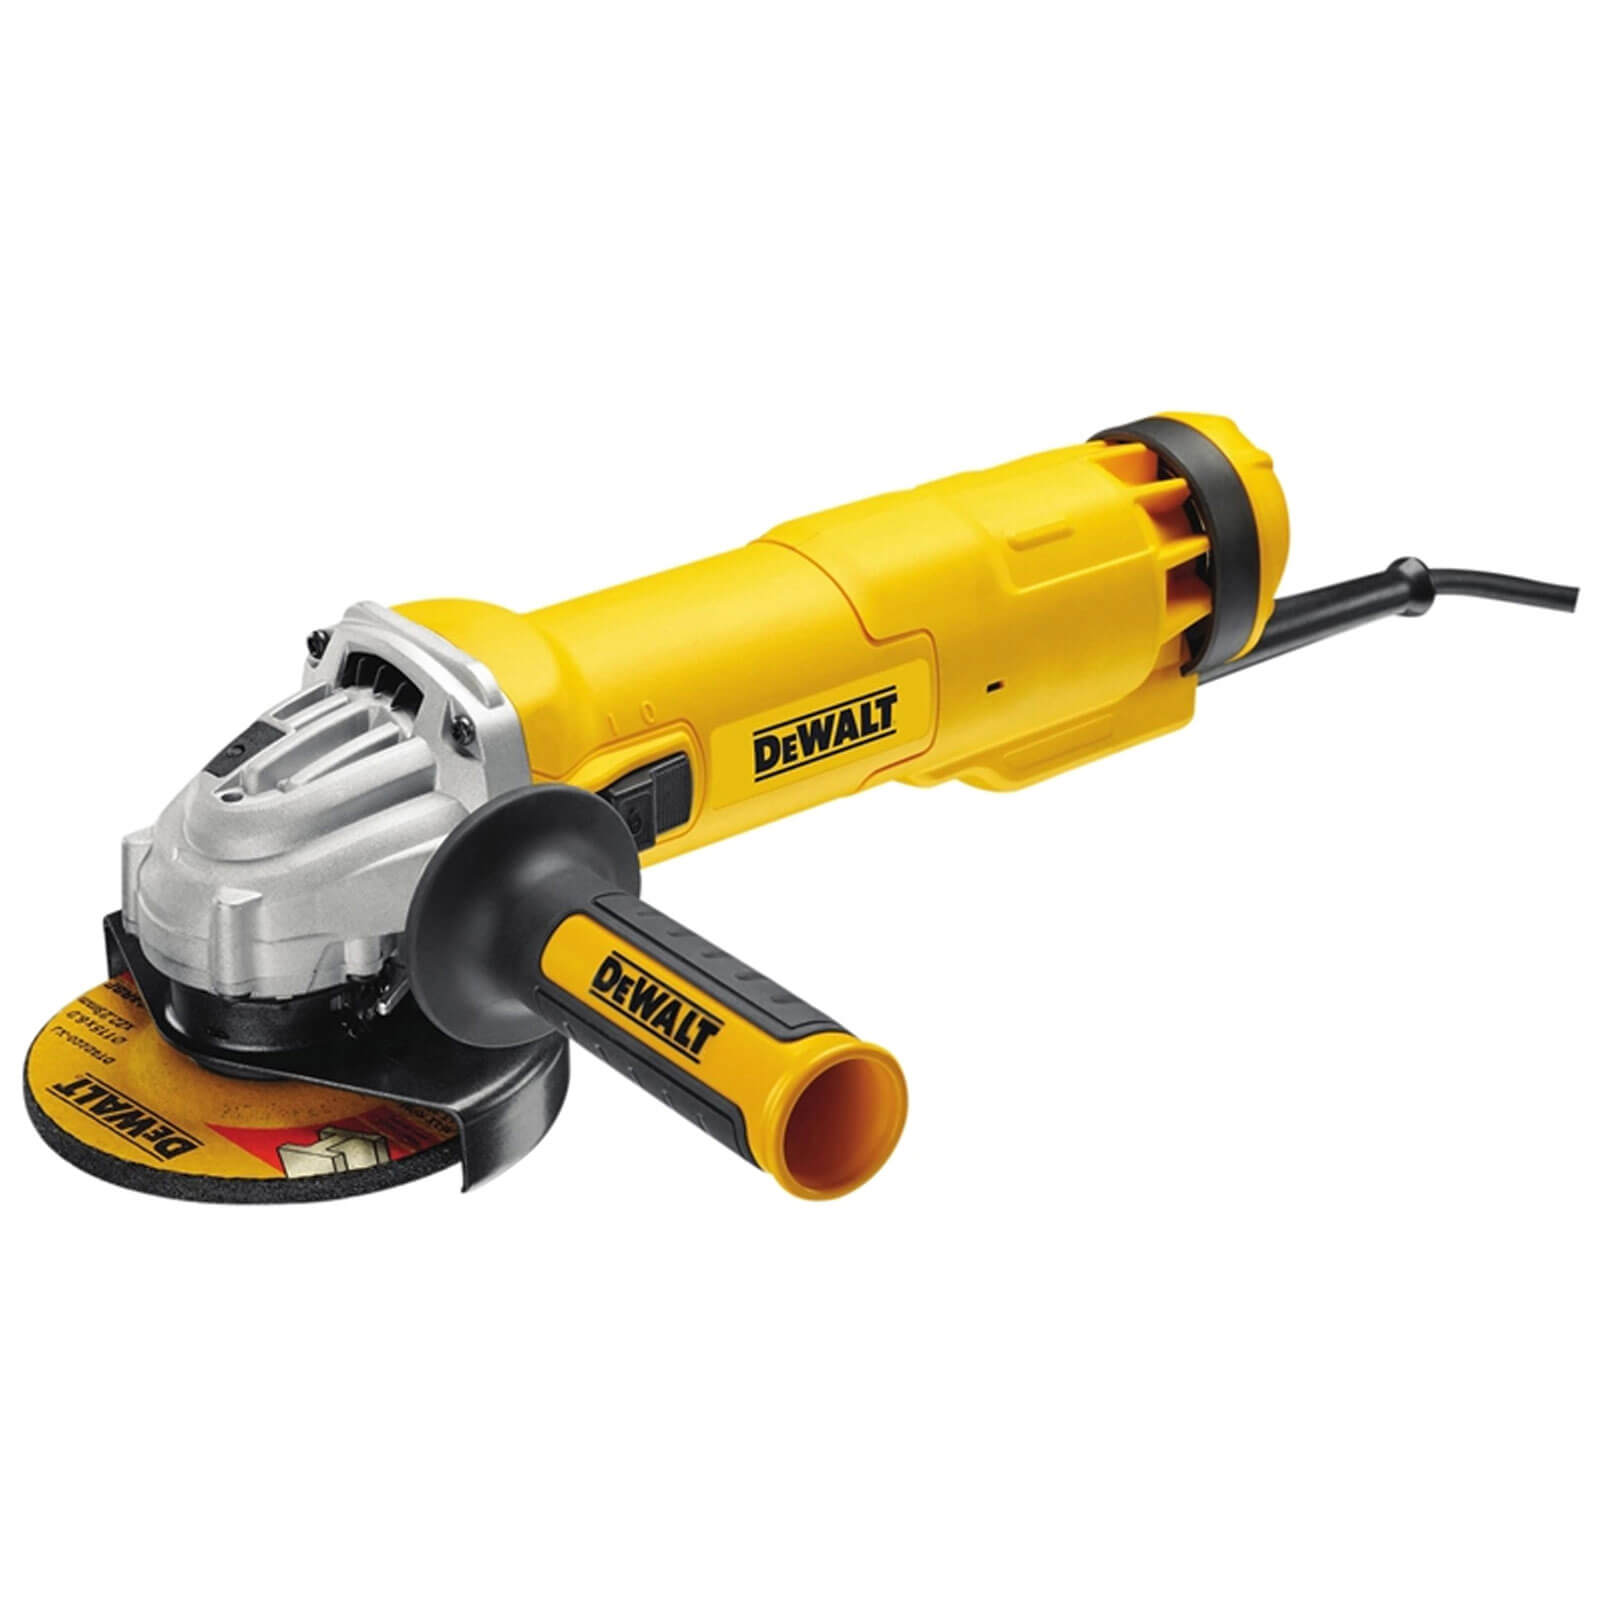 "Image of DeWalt DWE4206 Angle Grinder 115mm / 4 1/2"" Disc 1000w 240v"